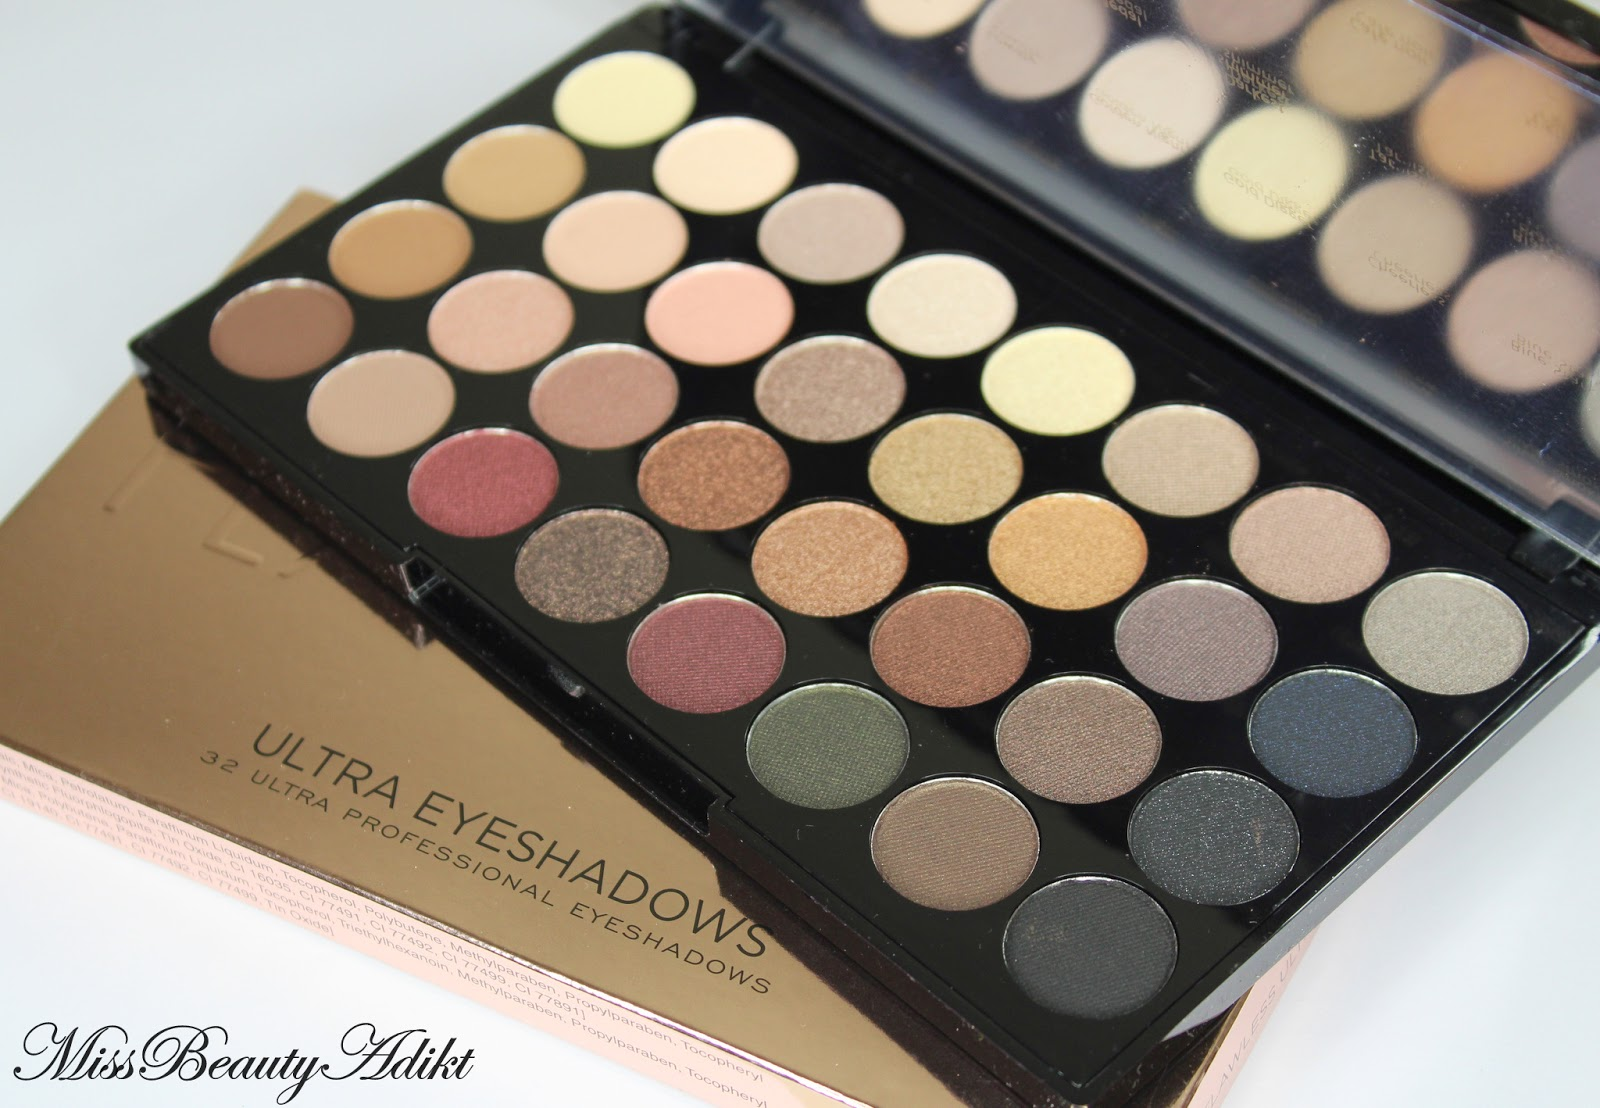 Makeup Revolution Ultra 32 Eyeshadow Palette in Flawless Review + Swatches